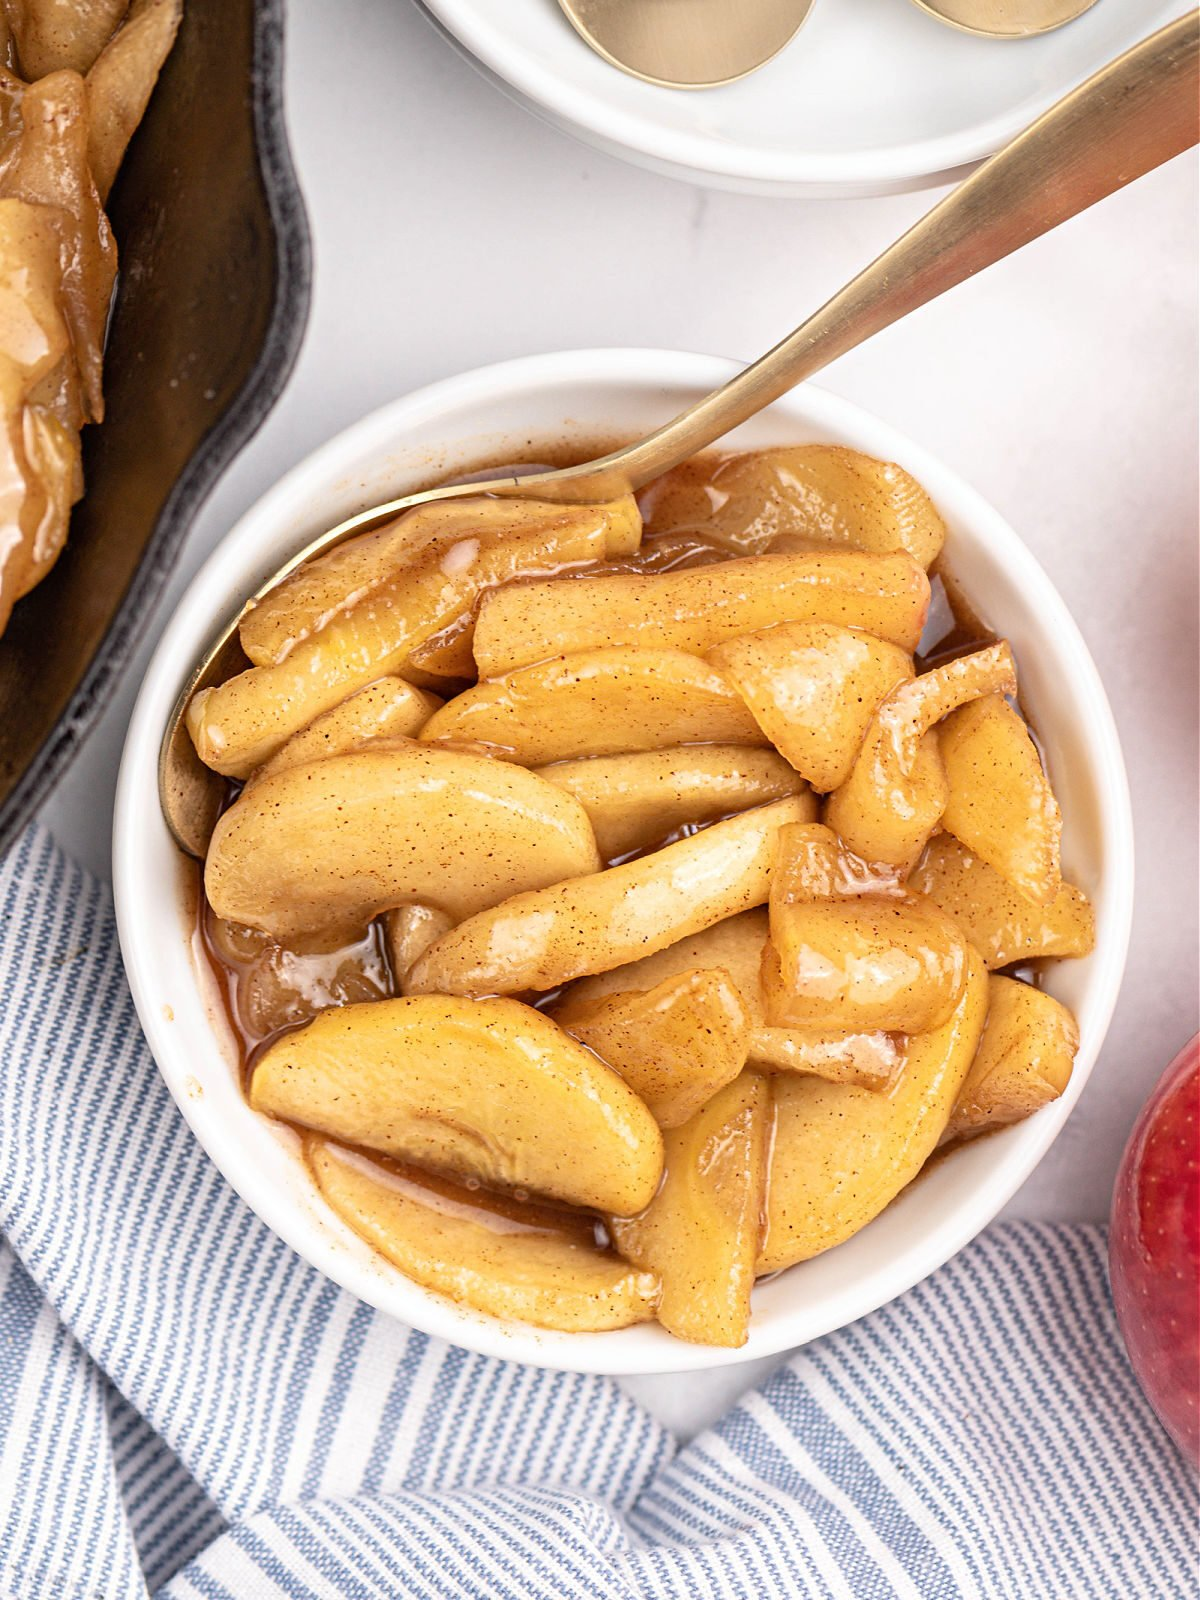 Bowl of fried apples and metal spoon.